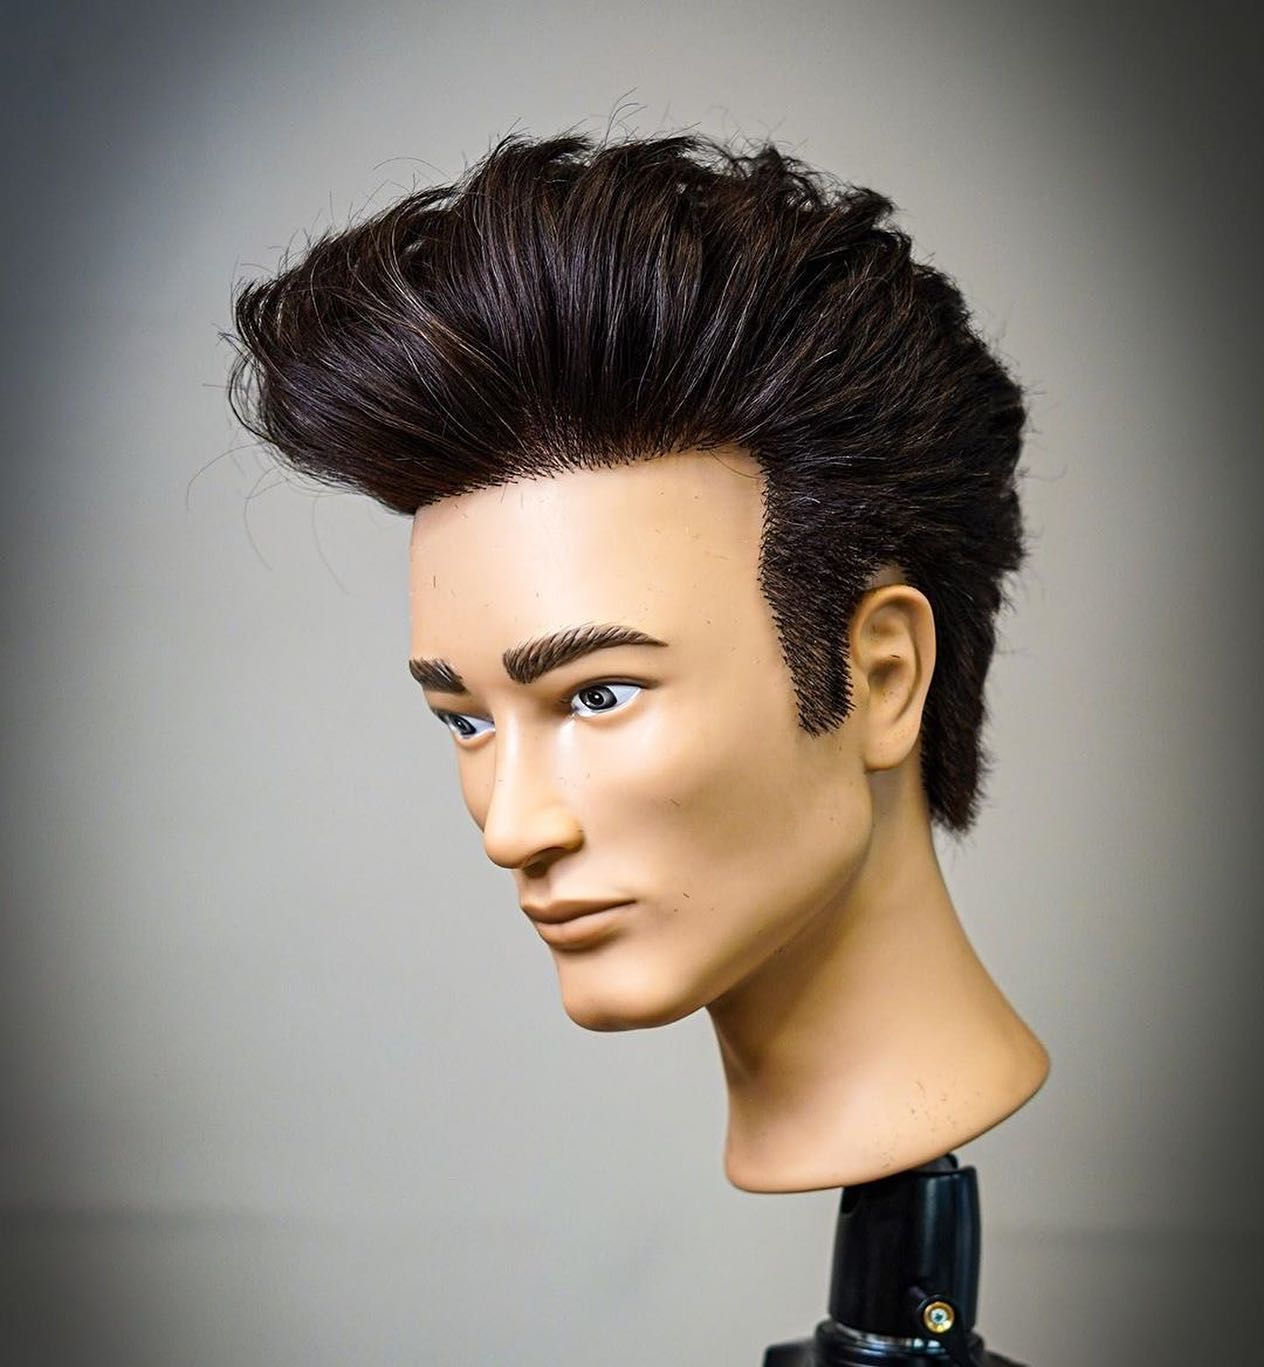 Johnny Bravo Vibes Pivotpointbarbering Learnforward Javcutsyou In 2020 Hair Mannequins